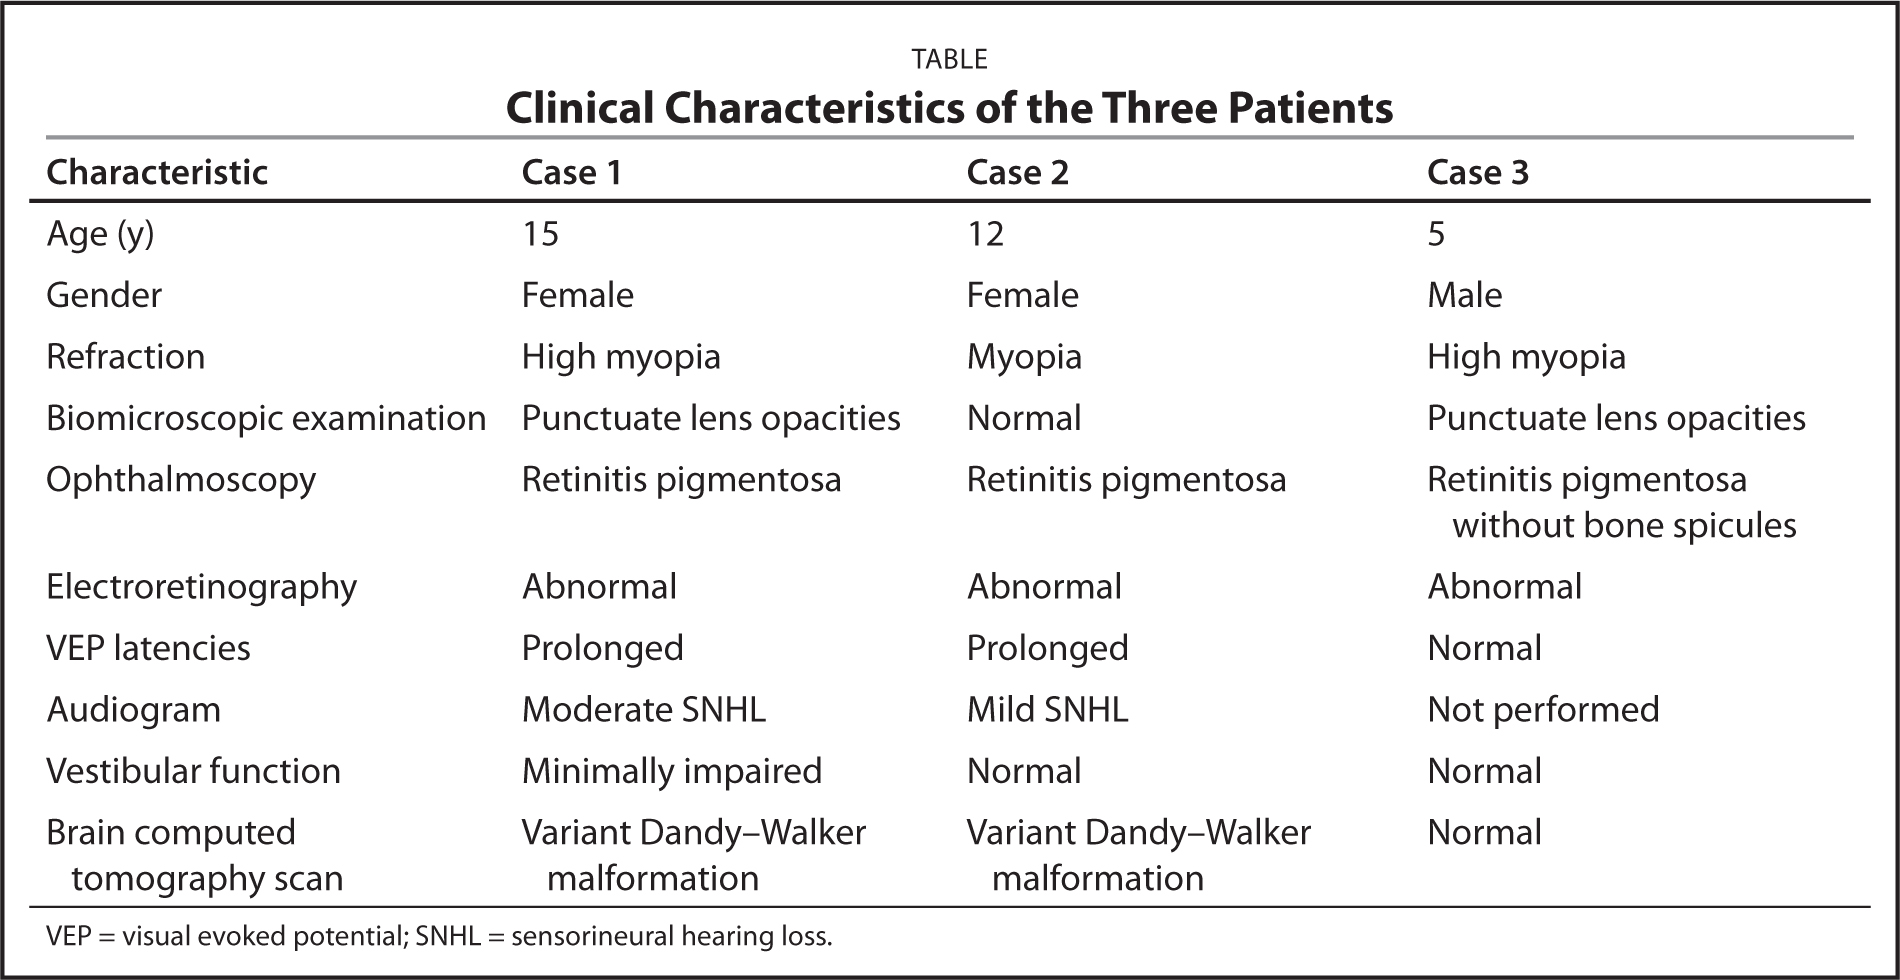 Clinical Characteristics of the Three Patients